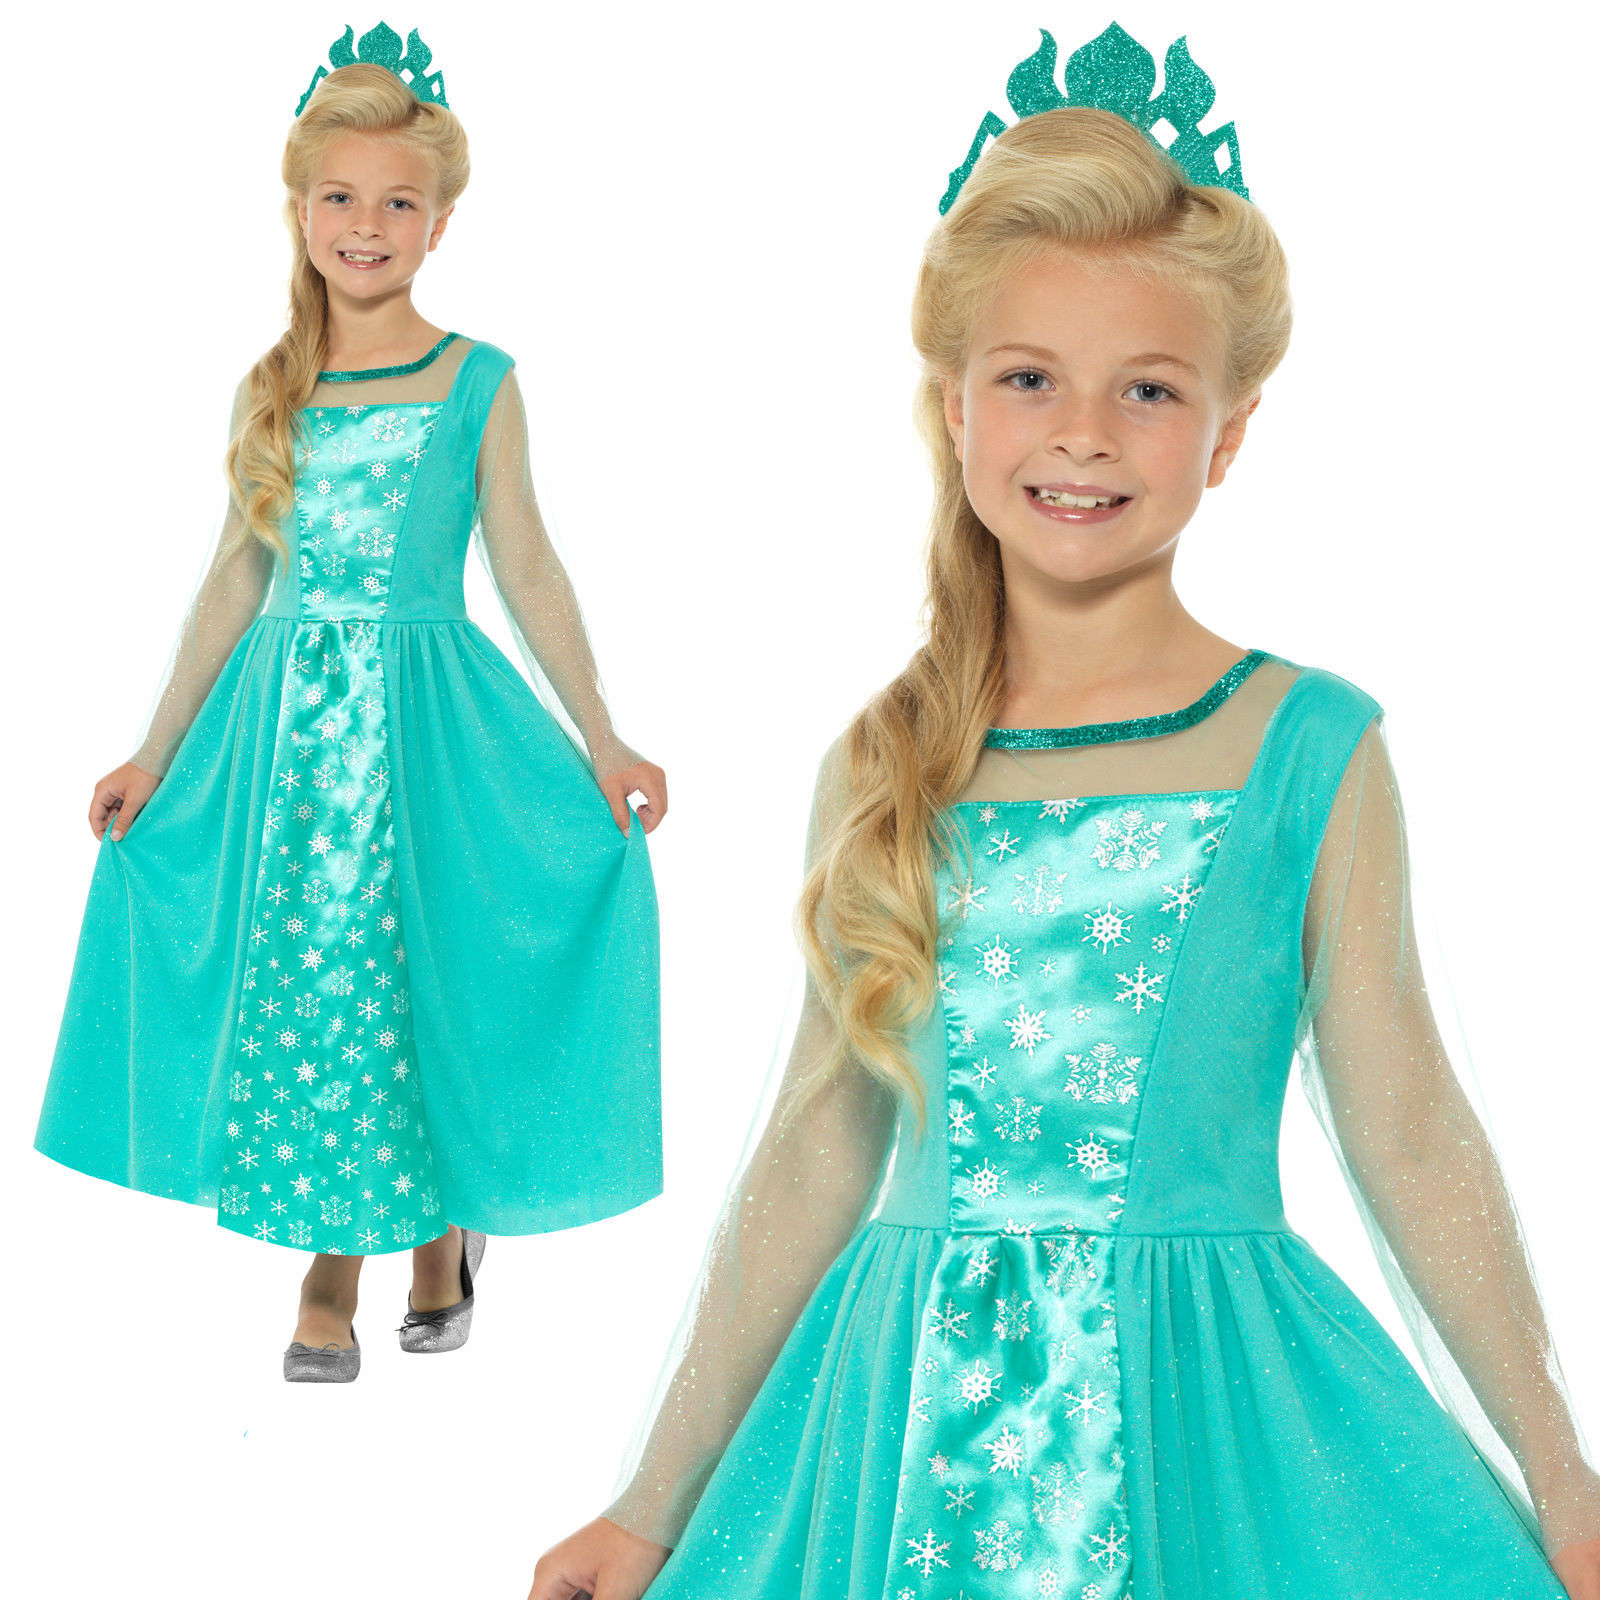 GIRLS/FAIRYTALE/ Ice Princess Costume, Blue